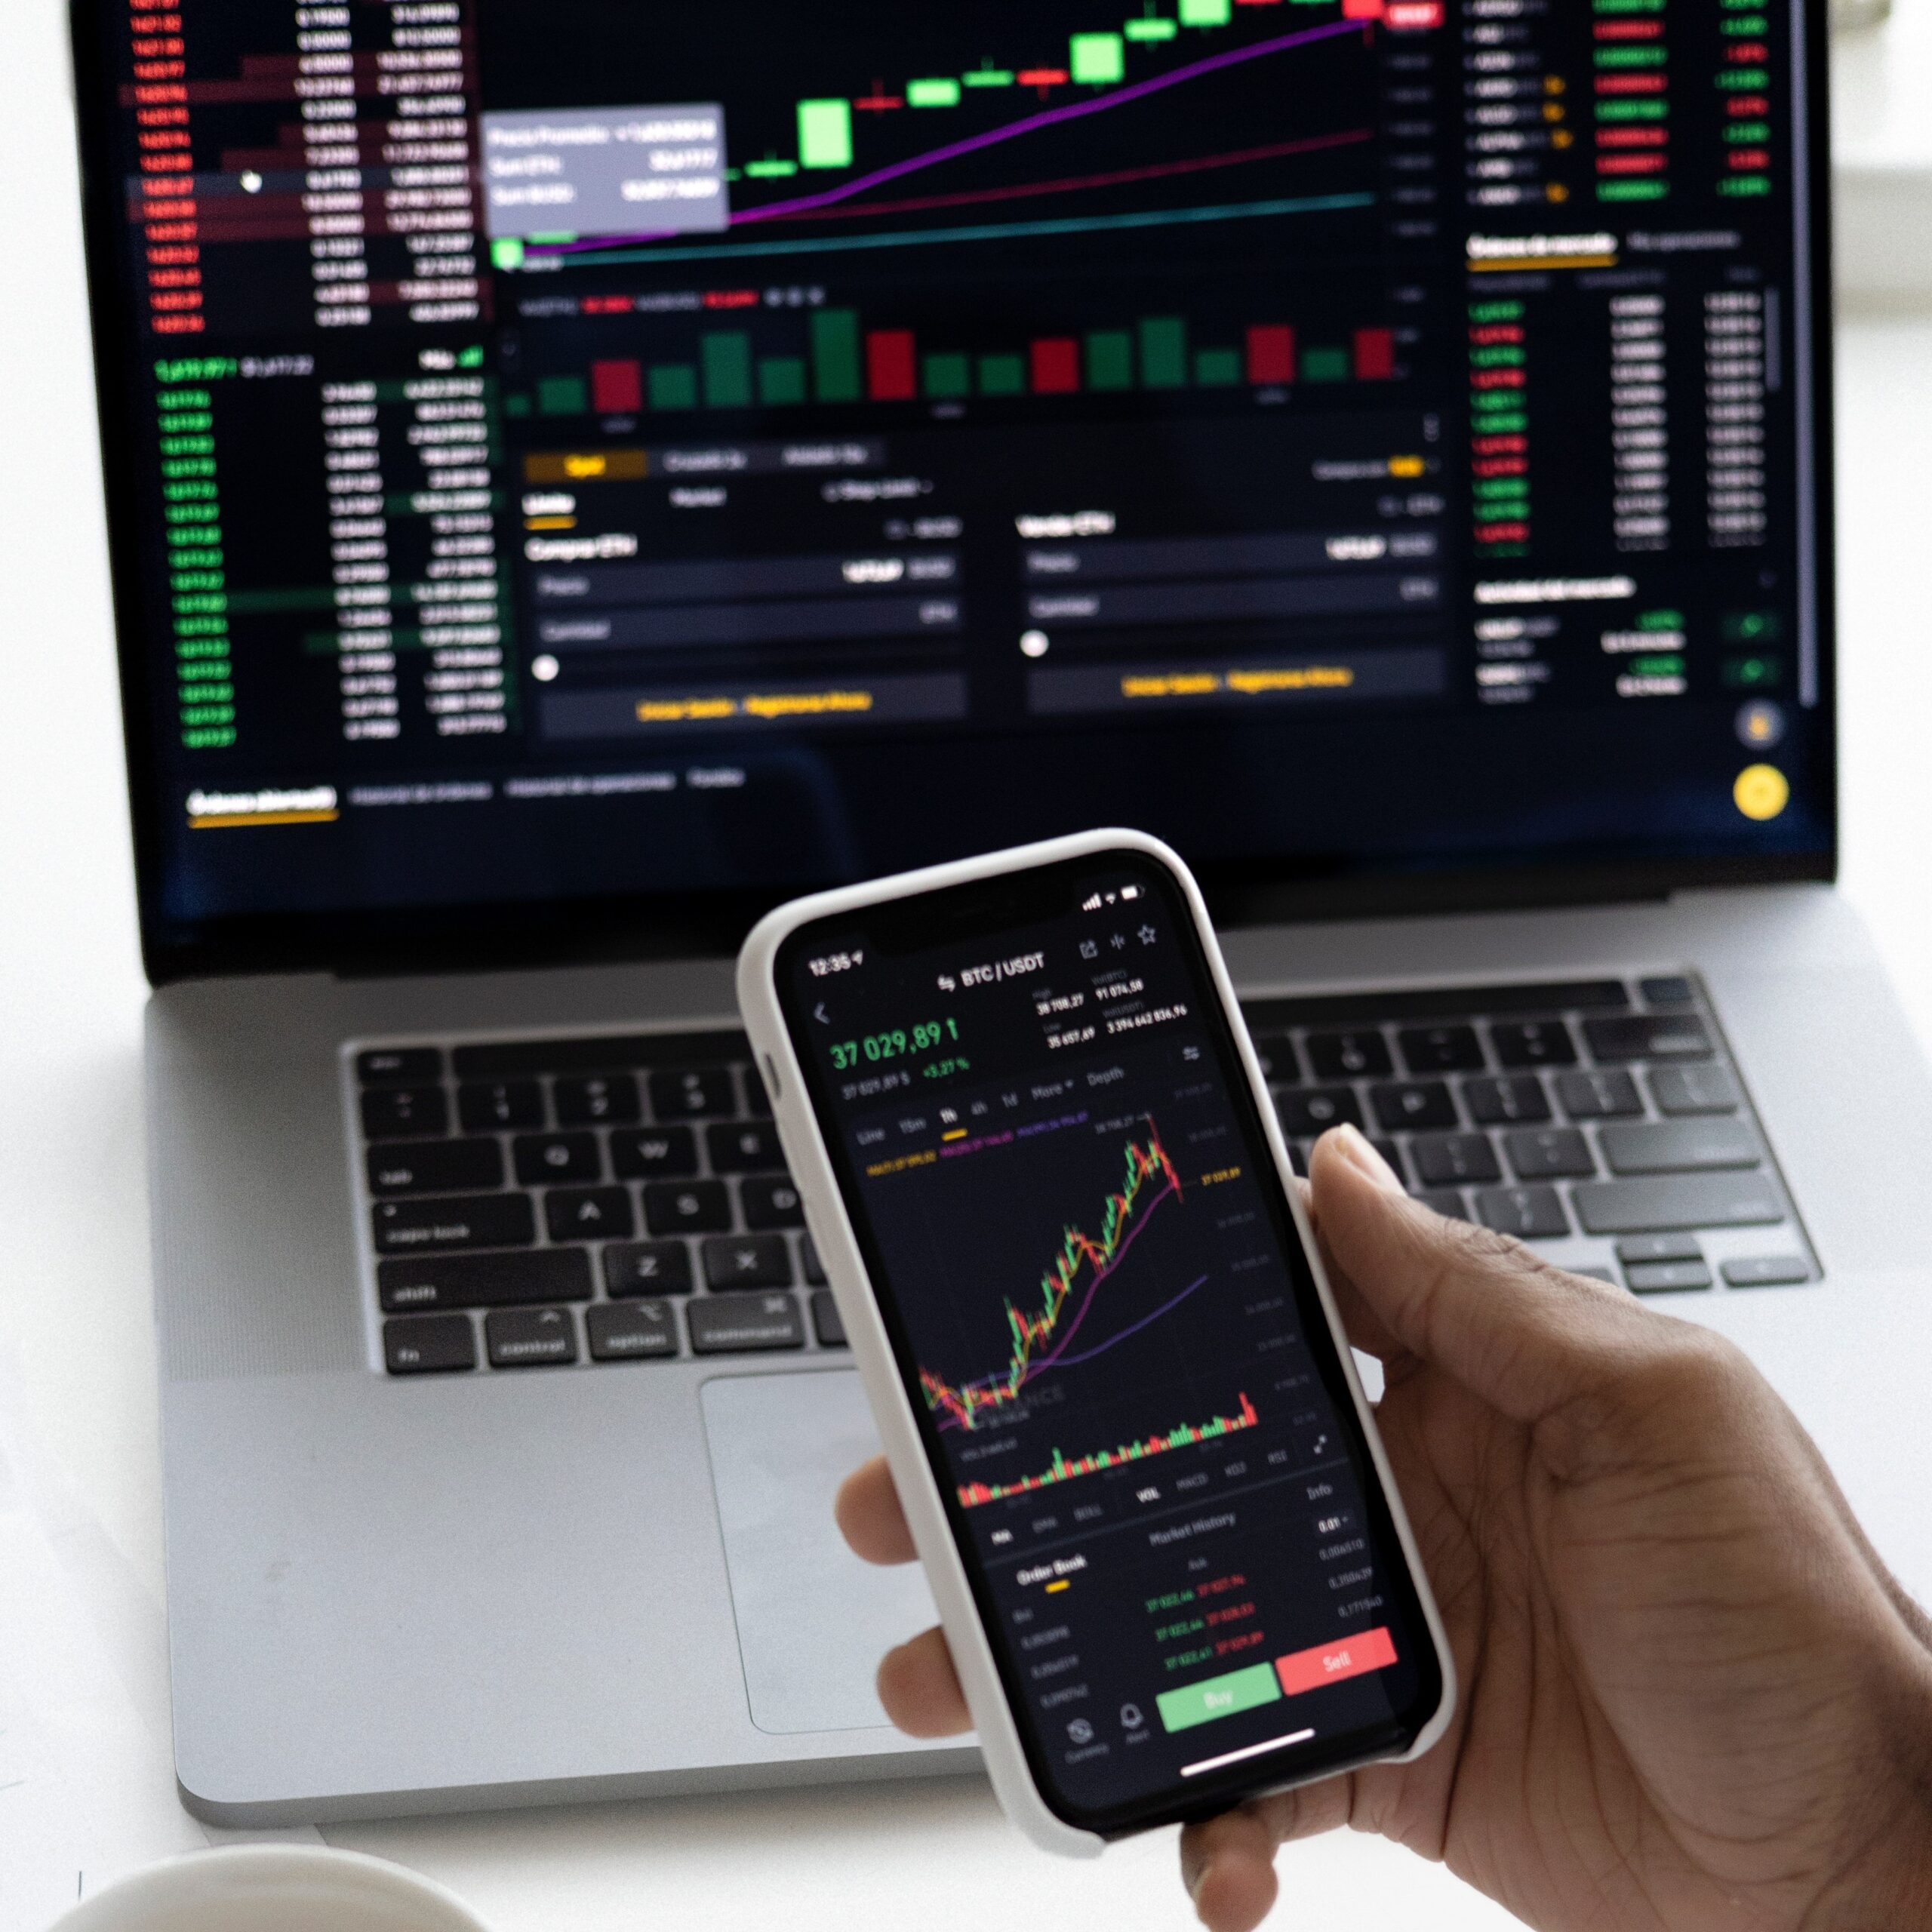 iPhone with stock market analysis in front of laptop with more stock market numbers